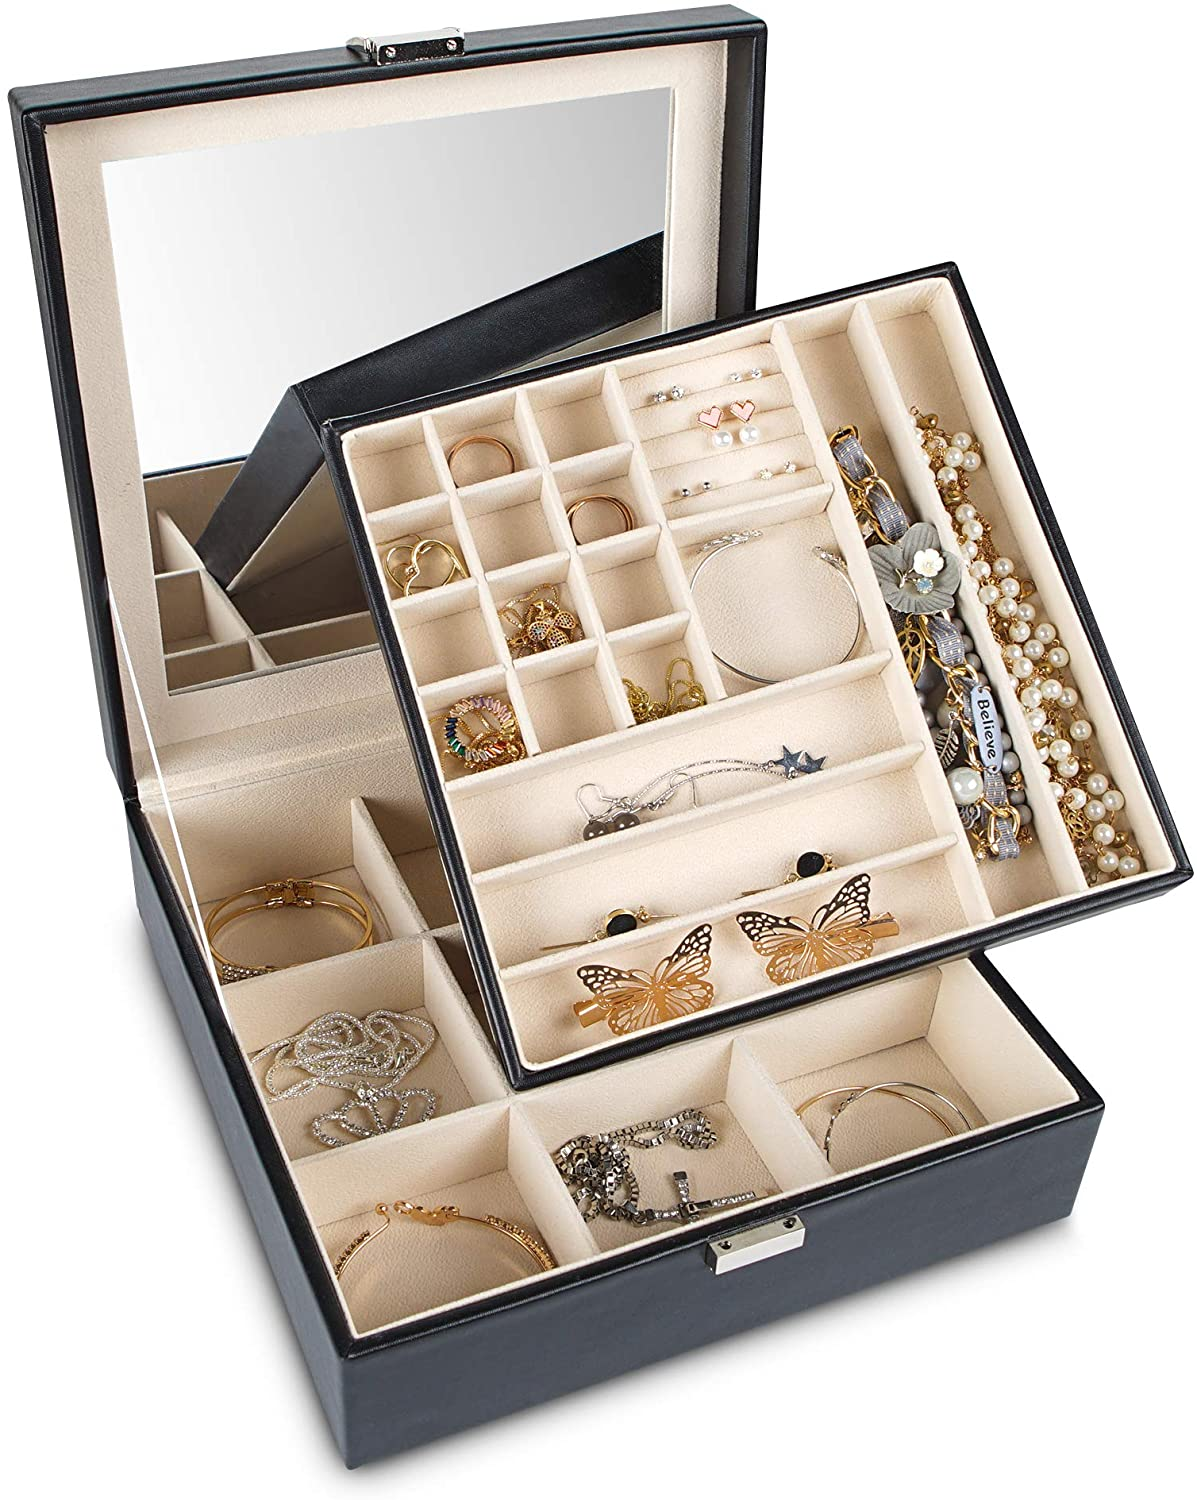 Frebeauty Jewelry Organizer Box 2-Layer Jewelry Box Organizer Storage Display with Lock and Built-In Mirror Travel Jewelry Holder with Multiple Compartments Gift for Women (Black)